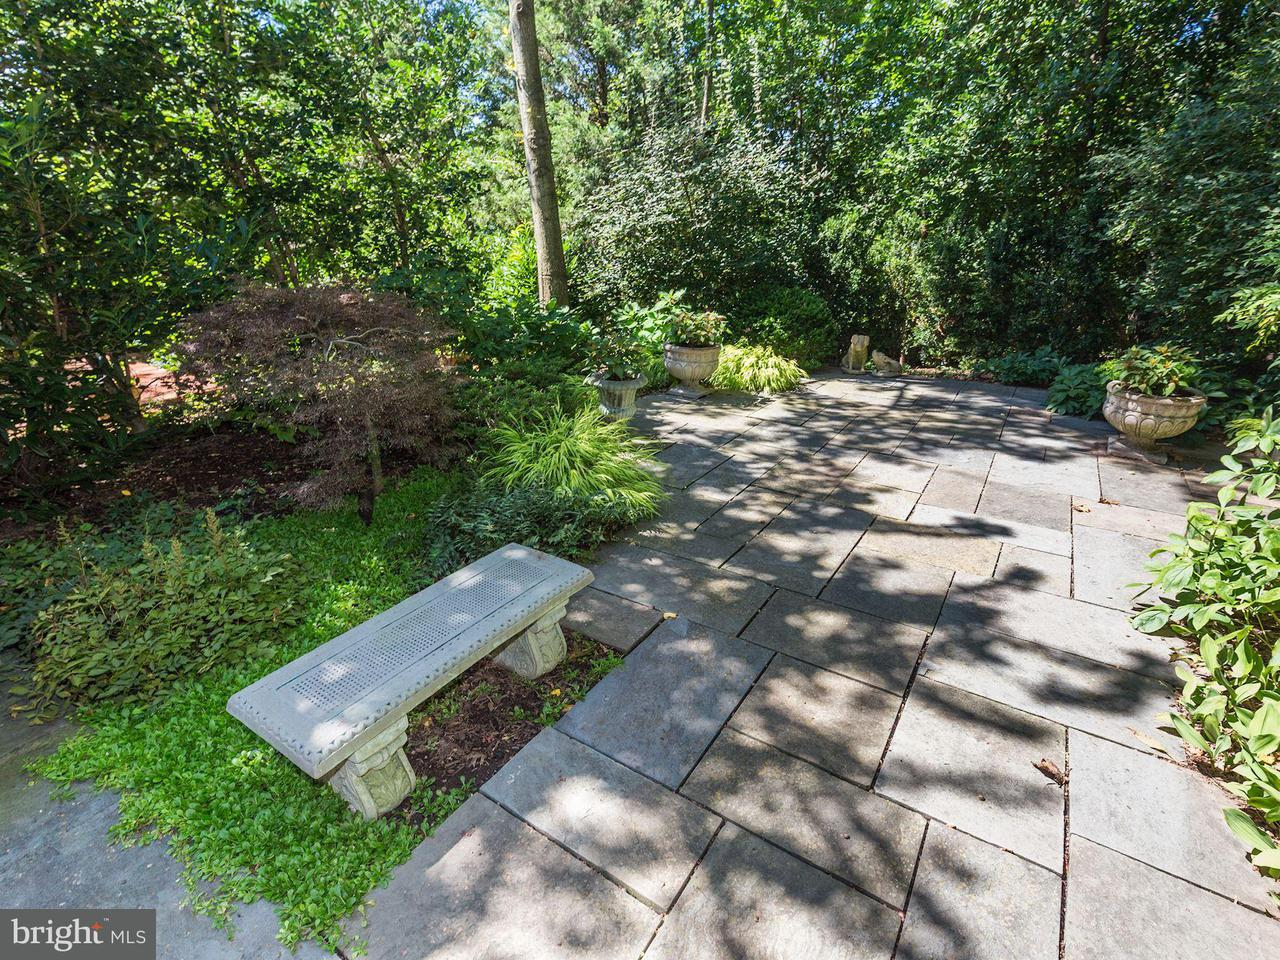 Additional photo for property listing at 3908 Hillandale Ct Nw 3908 Hillandale Ct Nw Washington, District Of Columbia 20007 Verenigde Staten